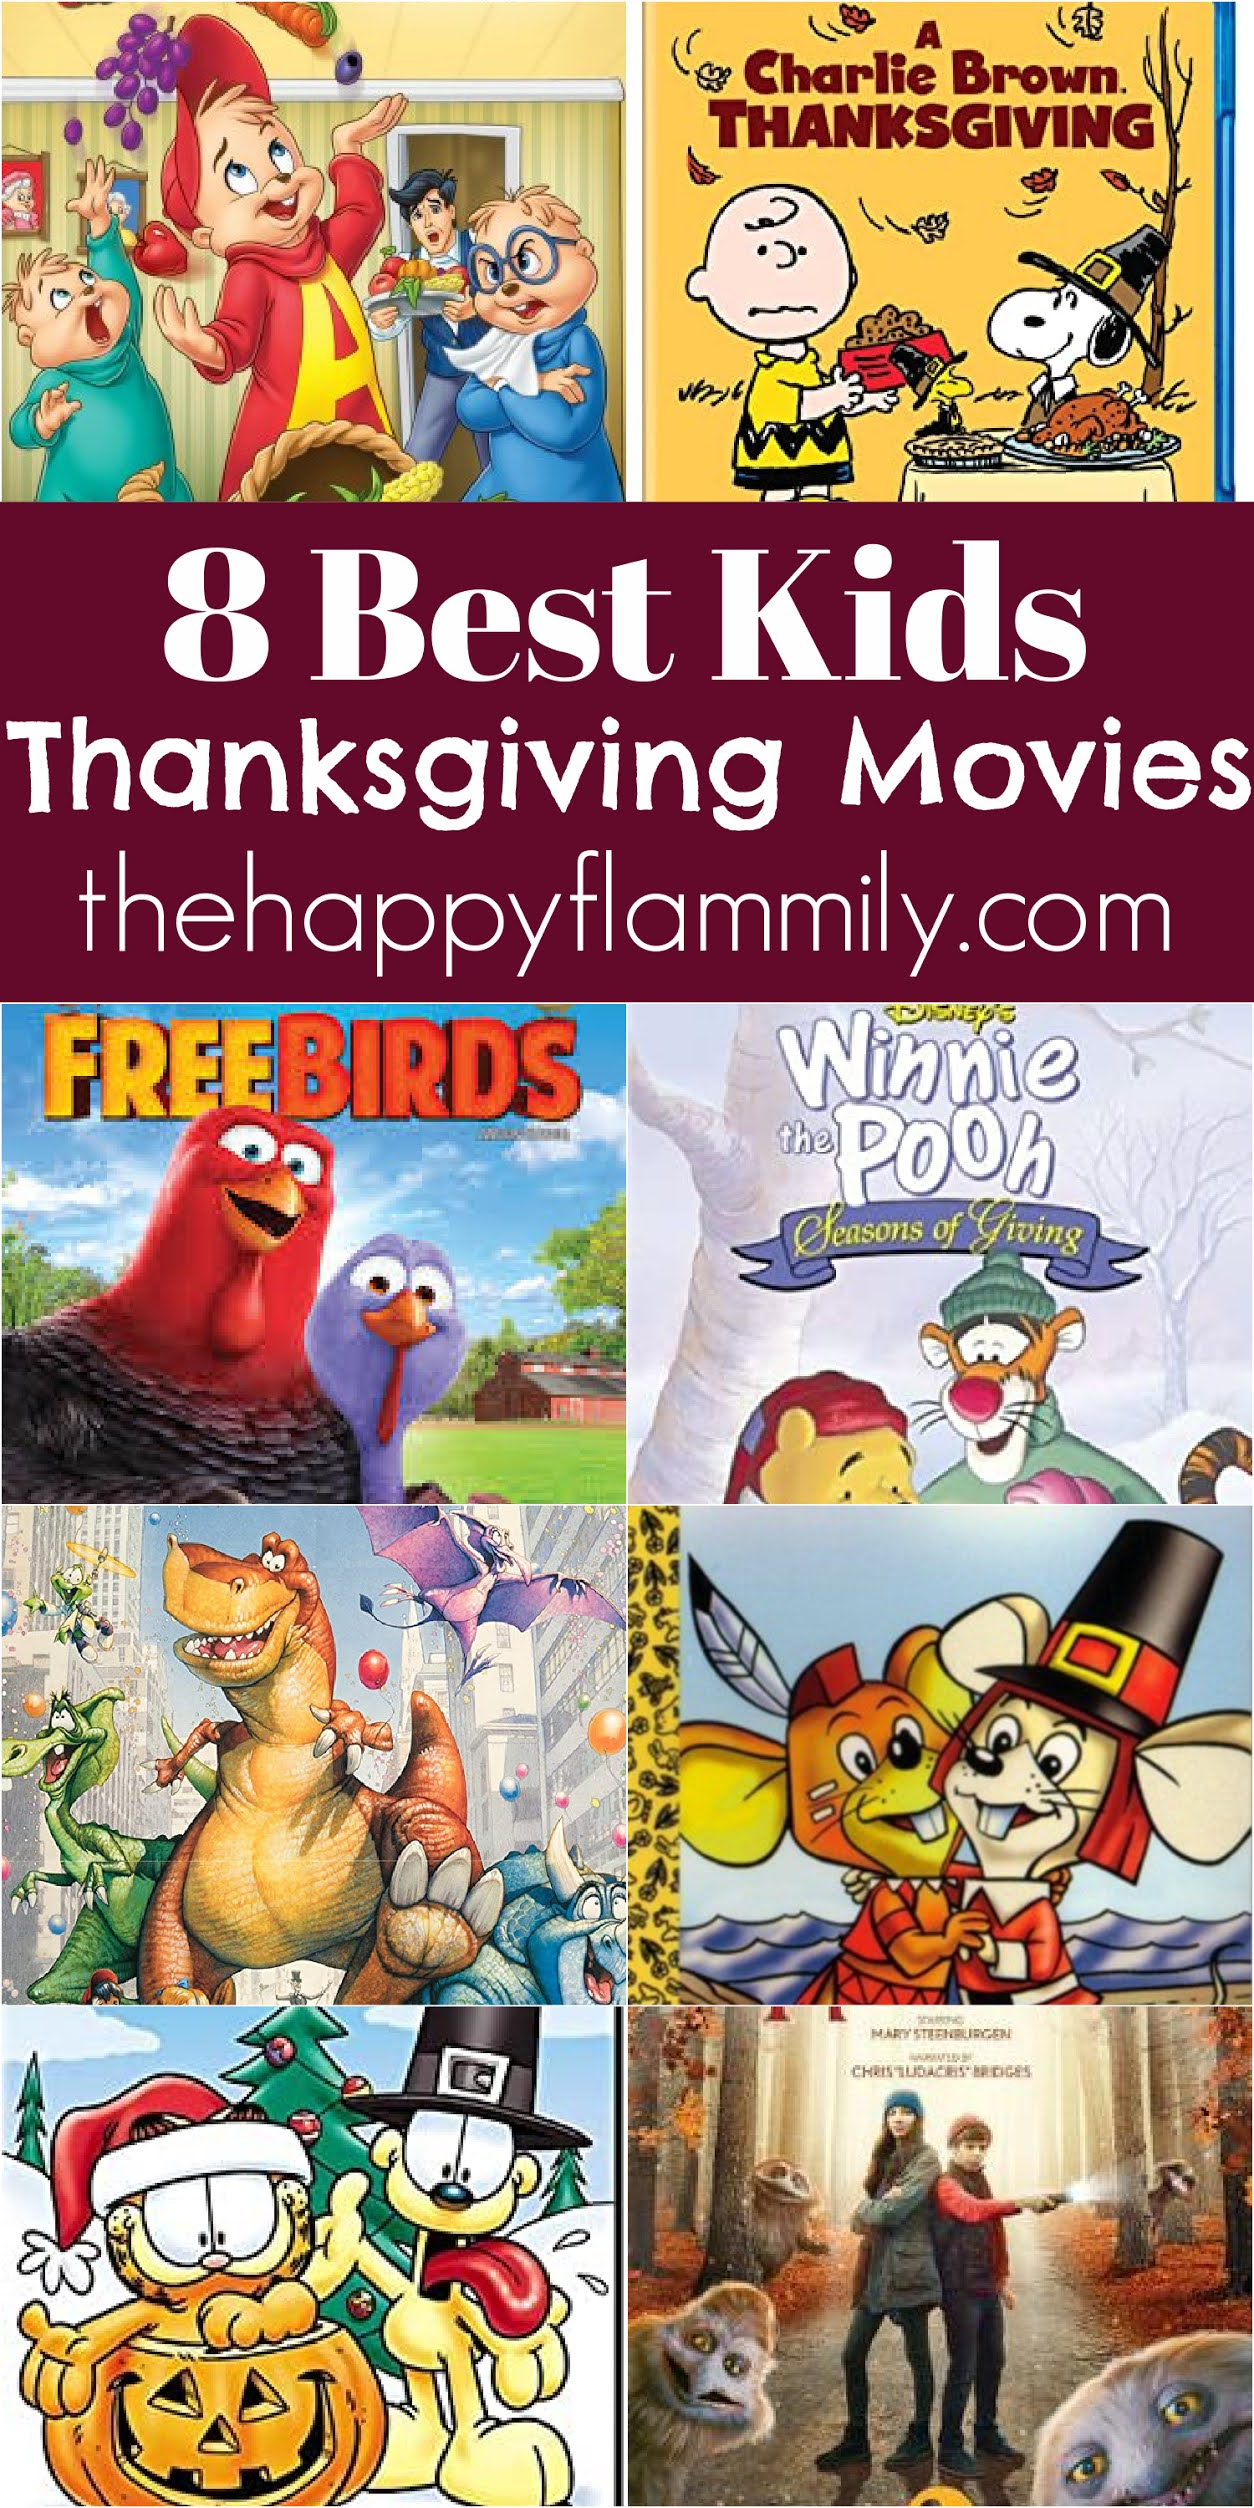 Thanksgiving movies on Netflix. Movies to watch on Thanksgiving. Hallmark Thanksgiving movies. Thanksgiving movies for Kindergarten. Disney Thanksgiving movies. #thanksgiving #movies #Kids #family #familyfun